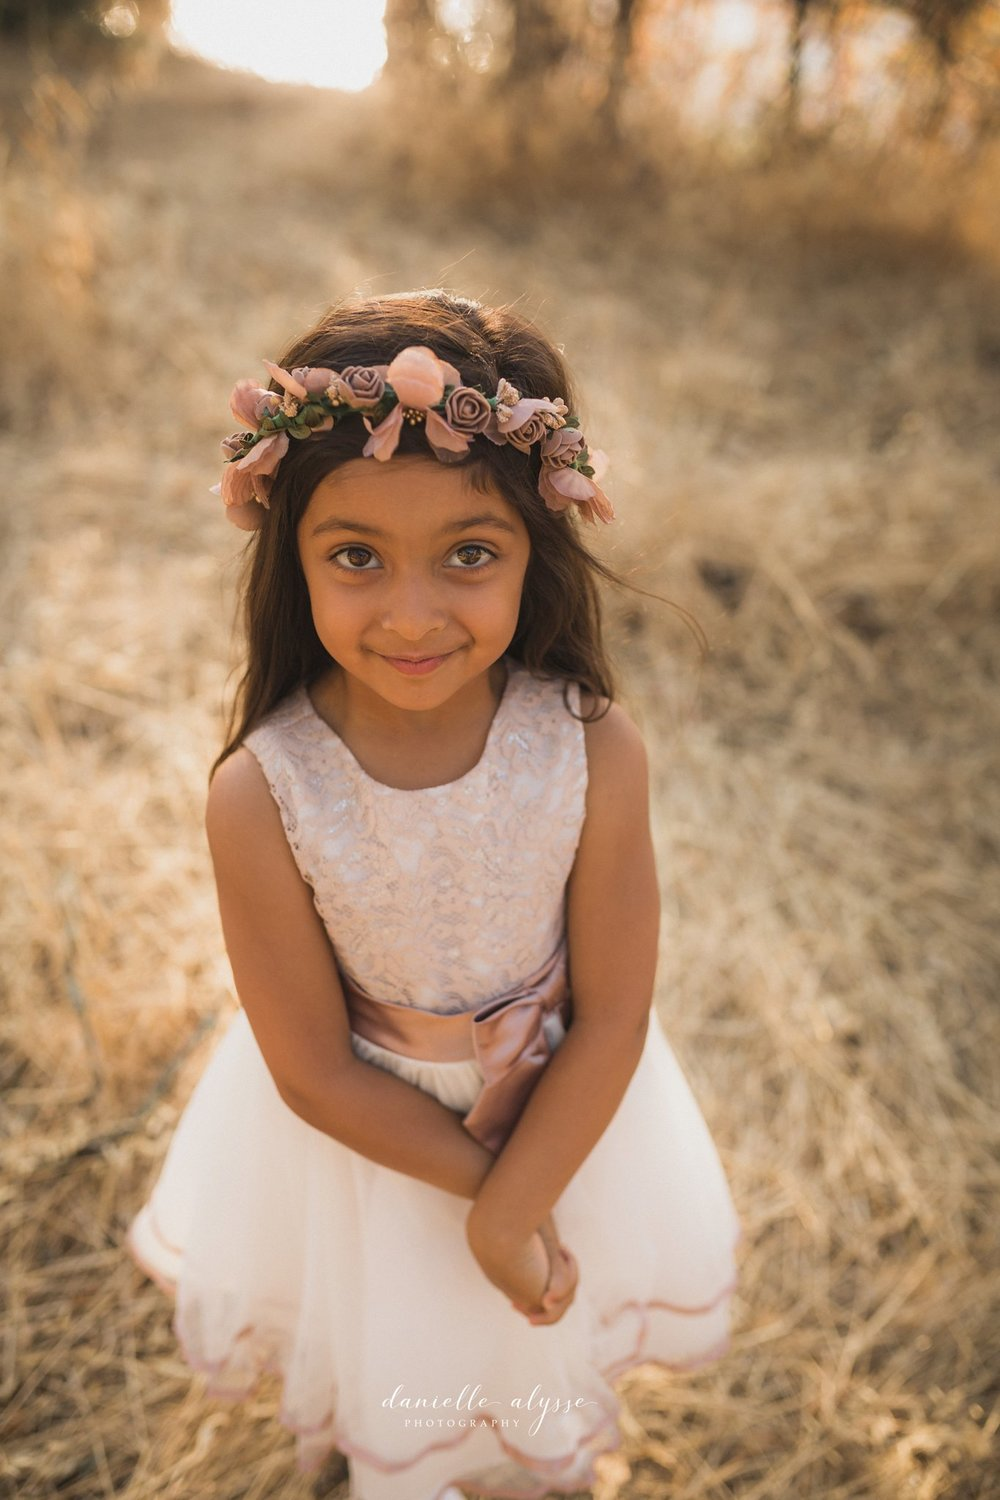 180628_family_portrait_navjit_folsom_california_danielle_alysse_photography_blog_28_WEB.jpg